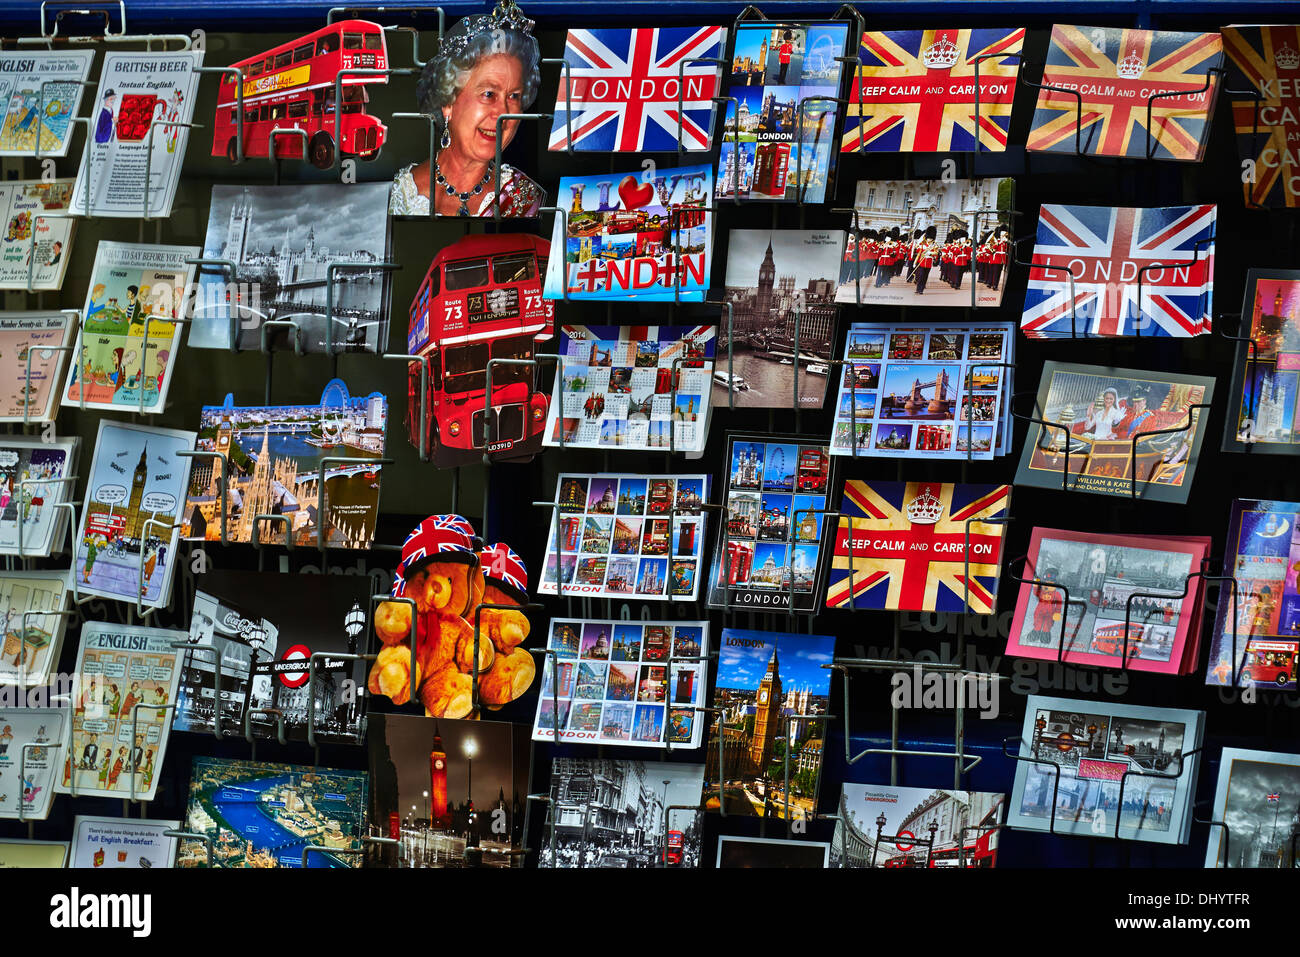 Shaftesbury Avenue Is a major street in central London, England, named after Anthony Ashley Cooper, 7th Earl of Shaftesbury - Stock Image